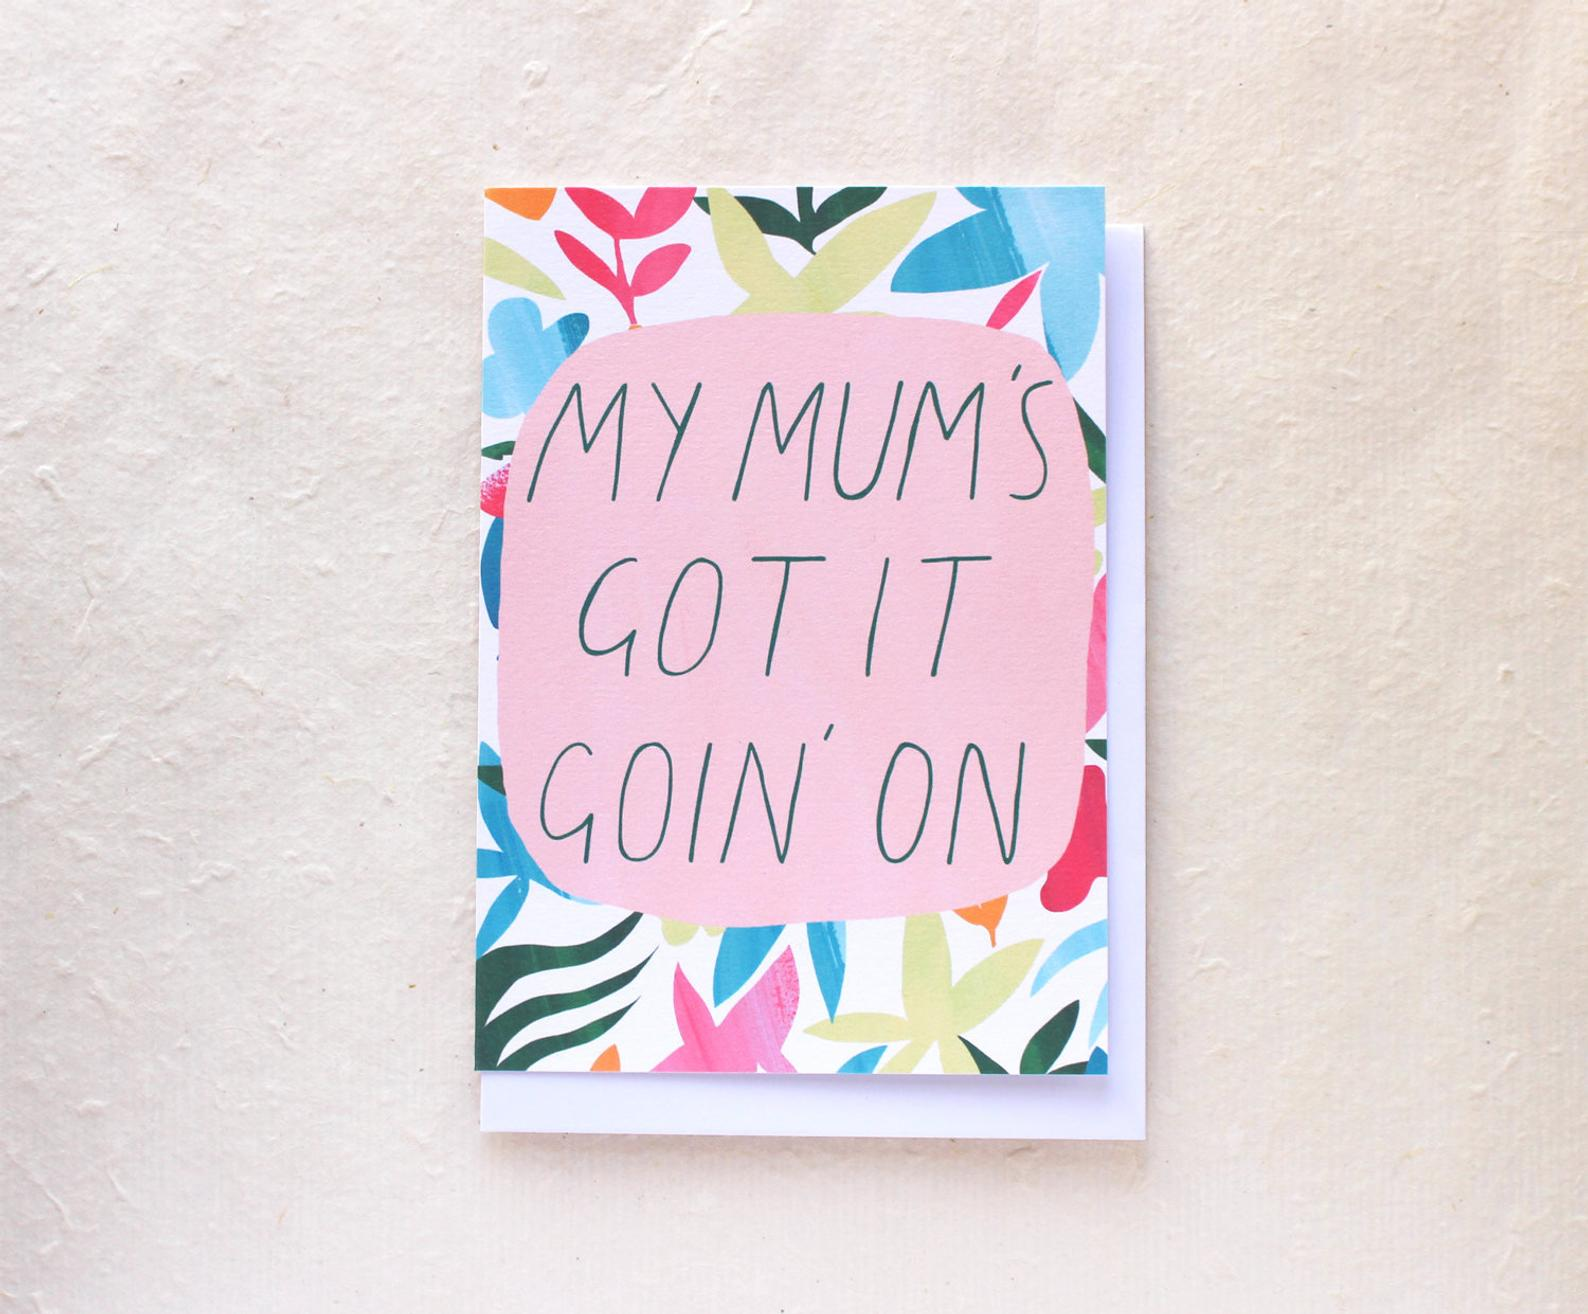 'My Mum's Got It Goin' On' Mother's Day card from Constance and Clay